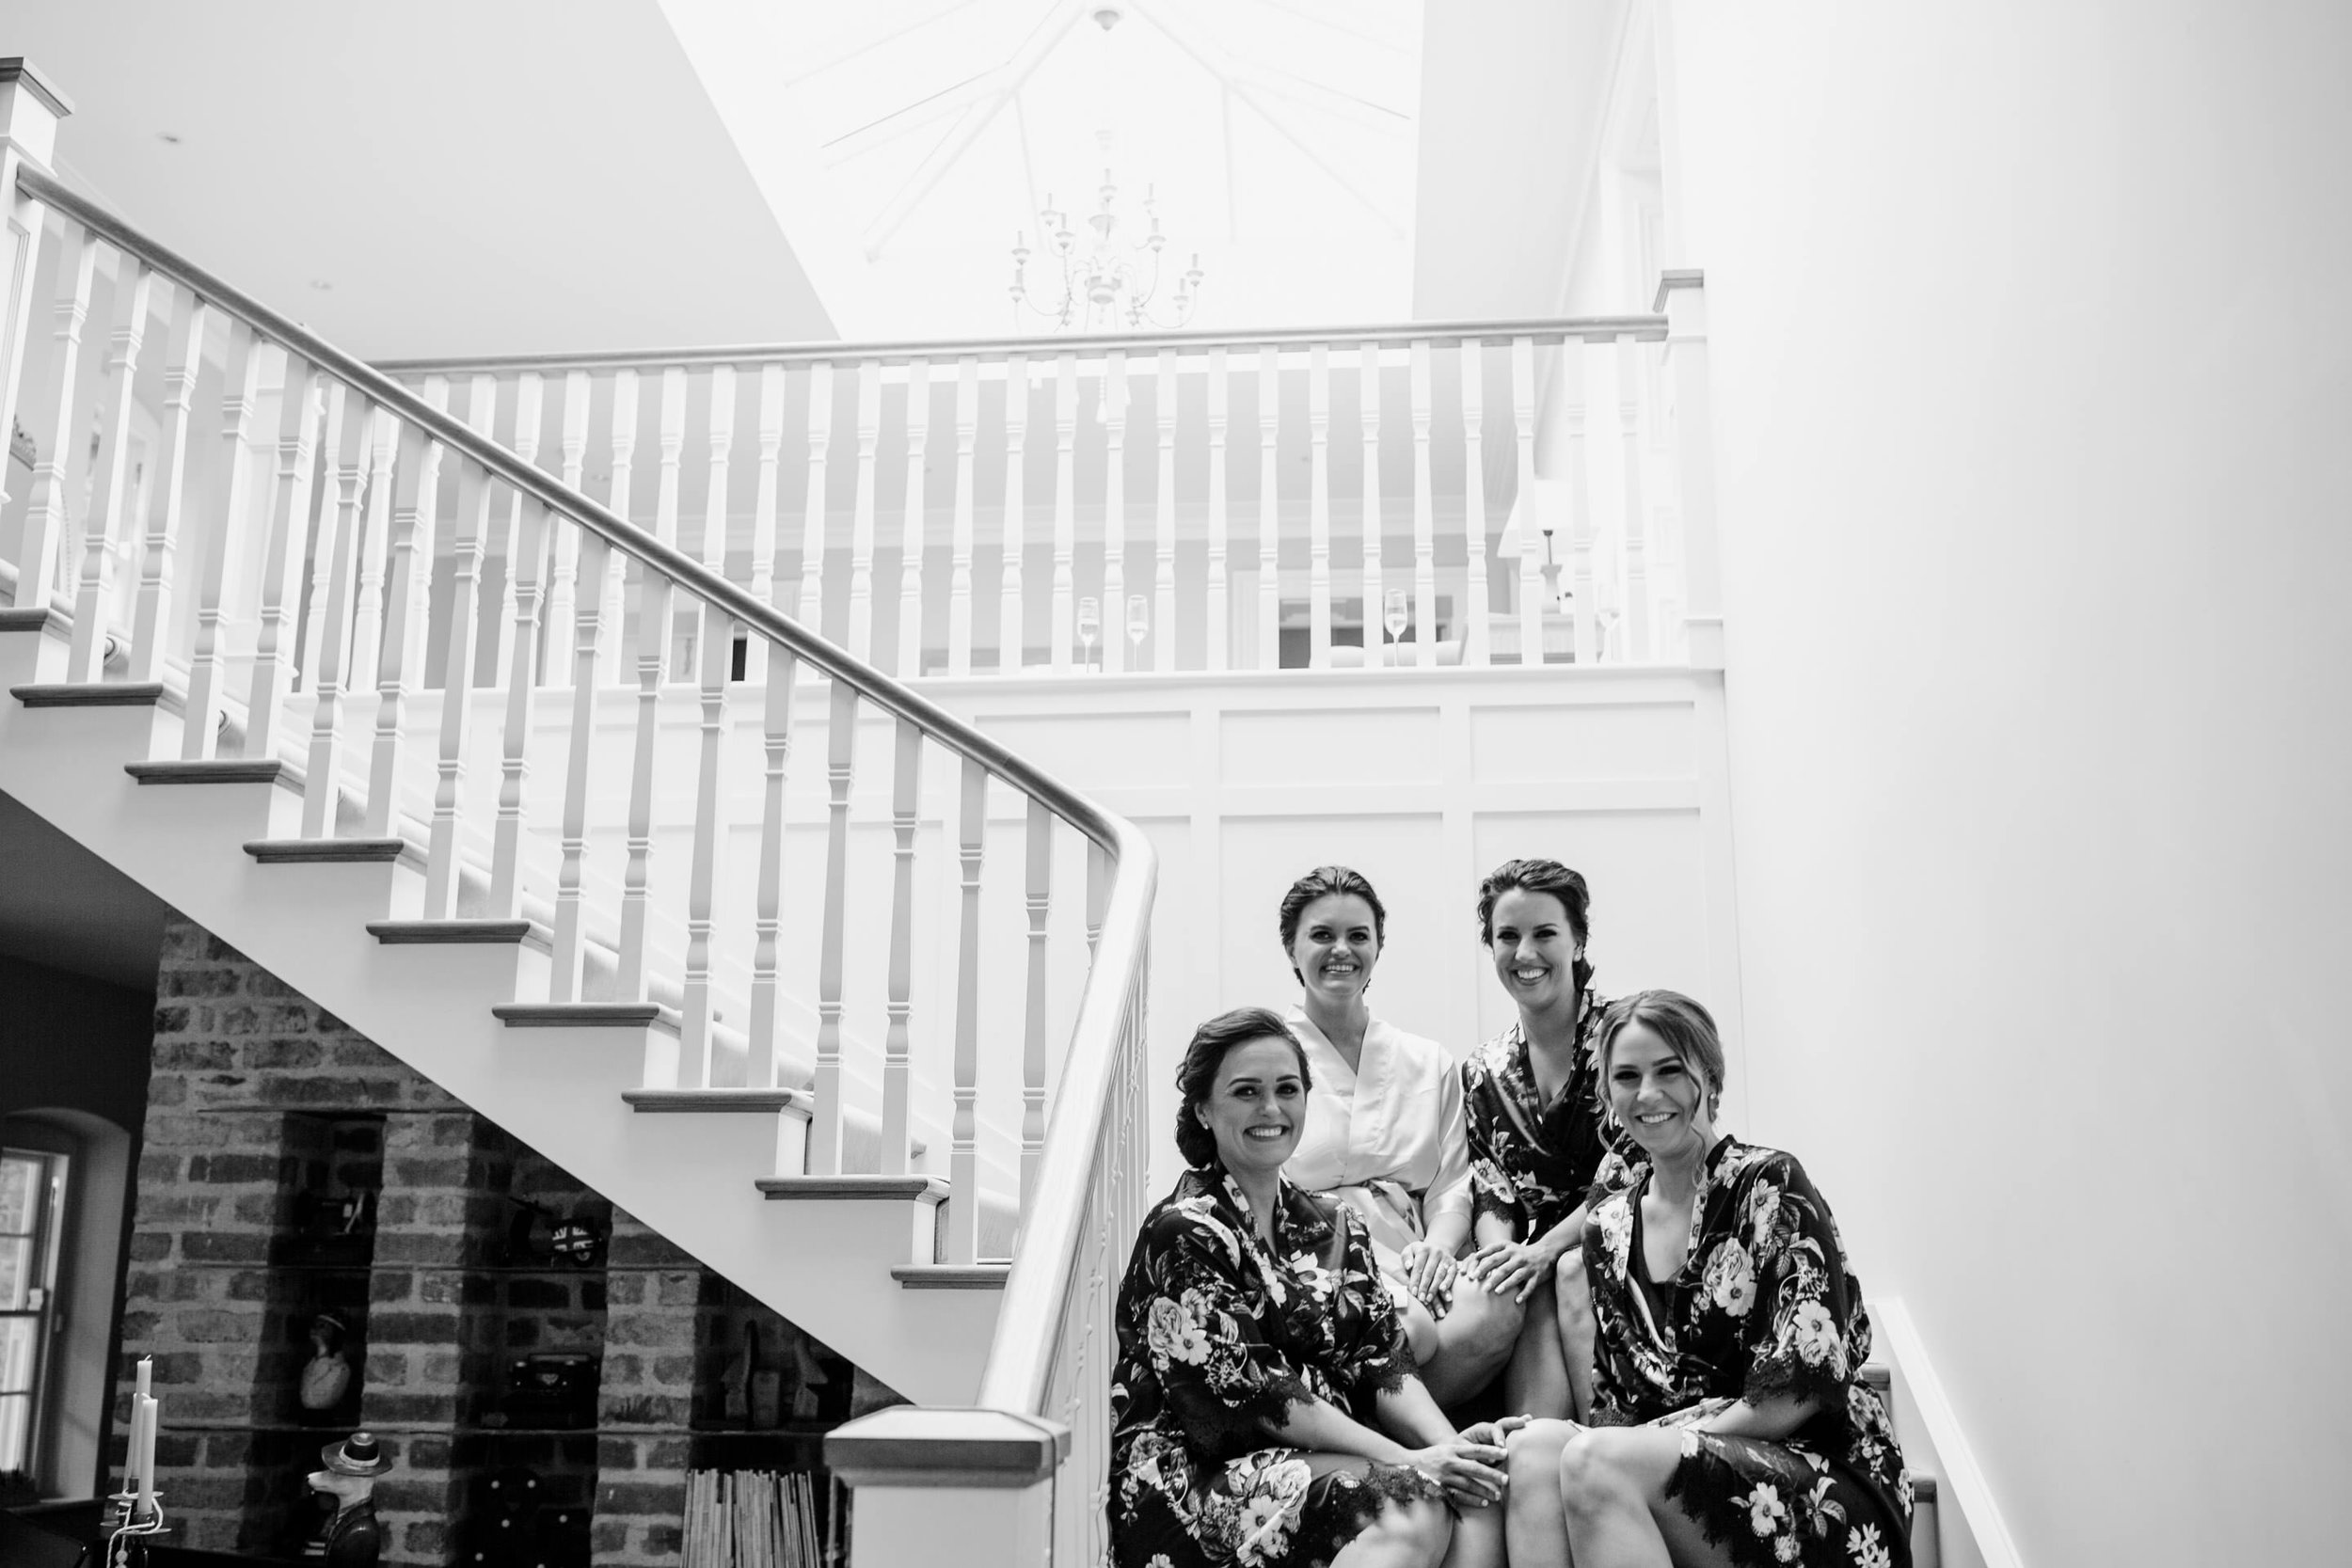 c+j_louth_wedding_photographer_bellingham_castle_livia_figueiredo_3.jpg